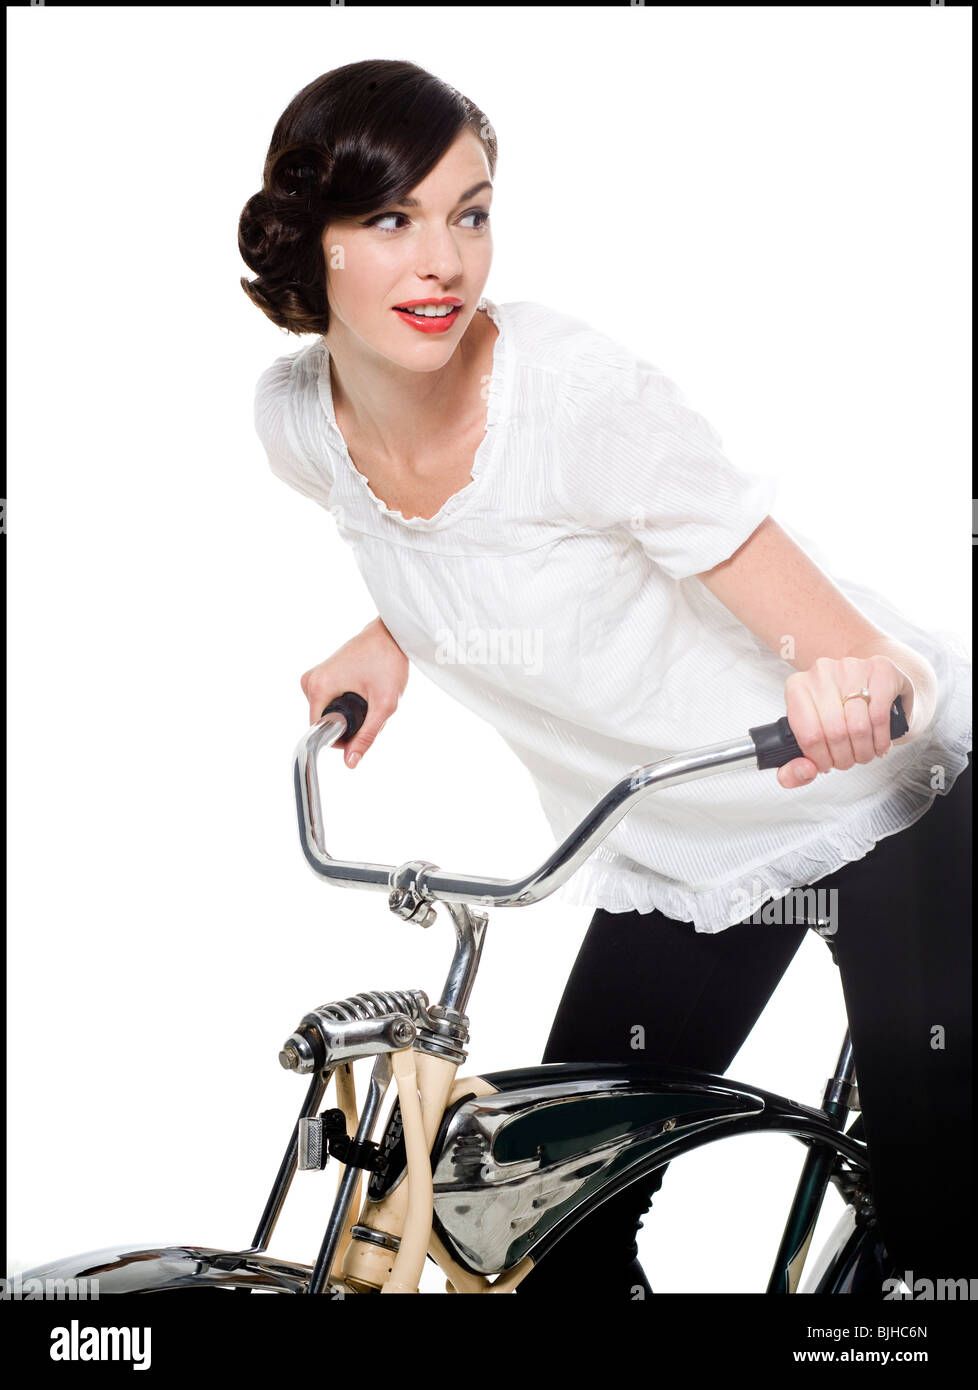 woman with her hair up in a classic hollywood hairstyle reminiscent of the 1940s riding a bike - Stock Image